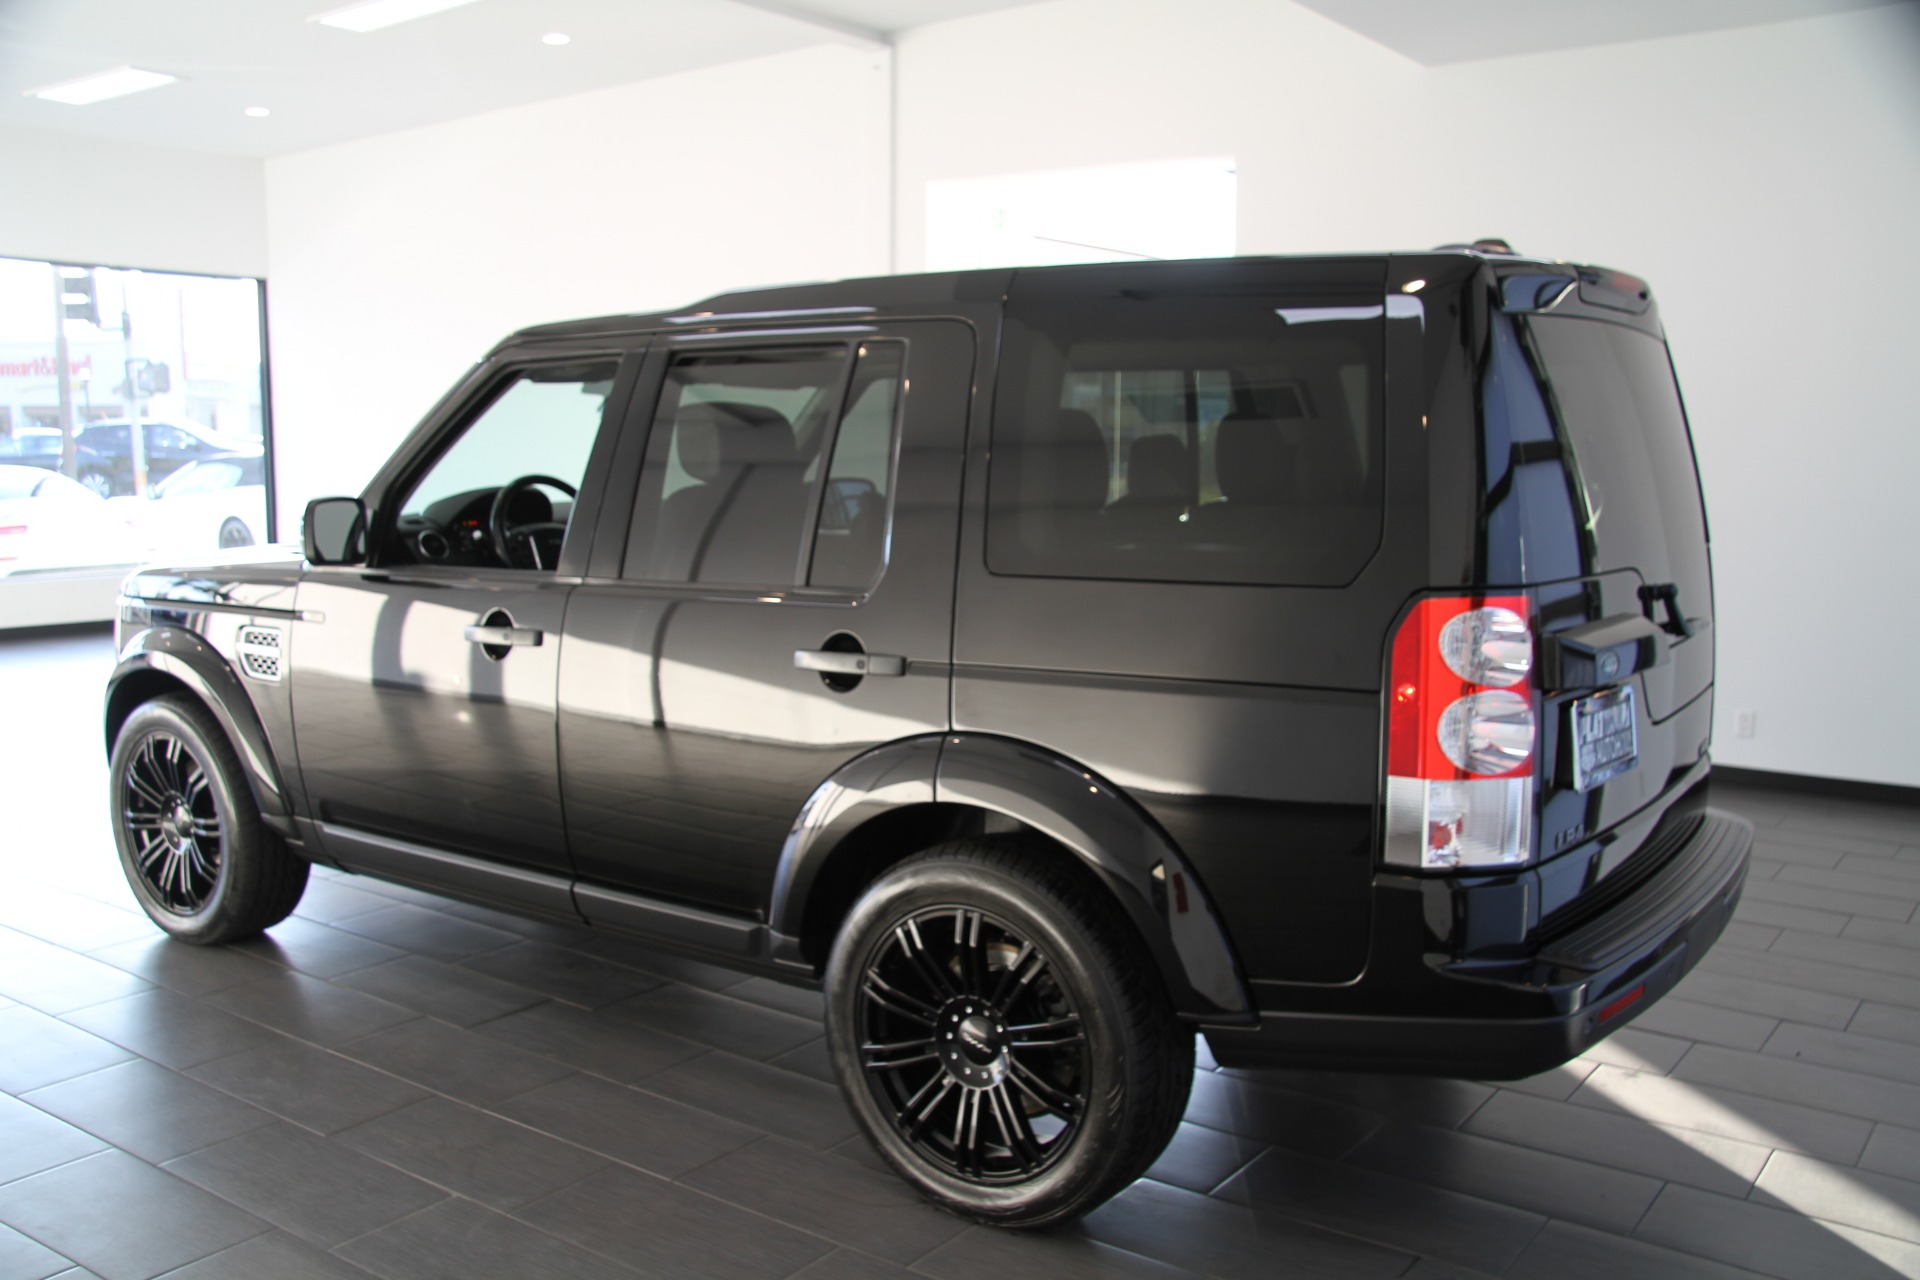 2012 Land Rover Lr4 Hse Luxury Stock 6054a For Sale Near Redondo Beach Ca Ca Land Rover Dealer